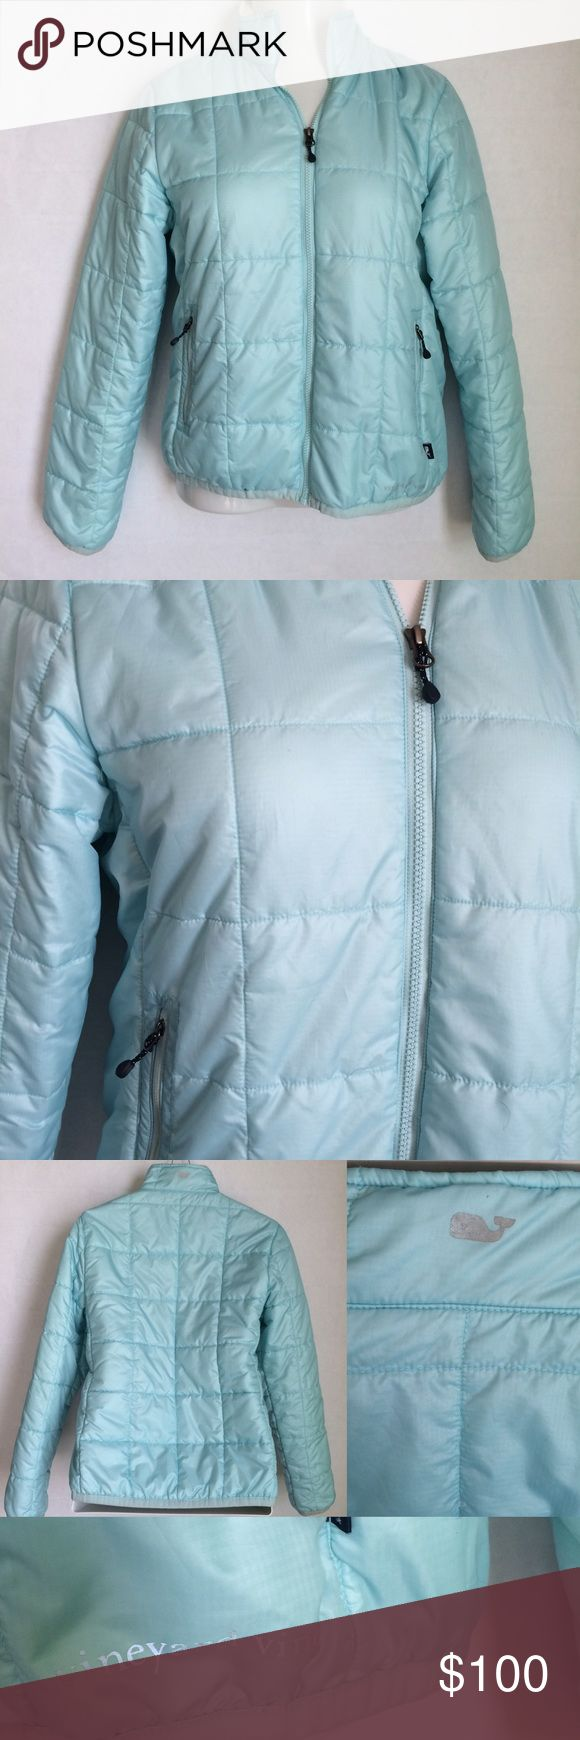 ✨NEW Listing✨Vineyard Vines quilted jacket Vineyard Vines Primaloft quilted jacket in a pretty aqua / sea glass color. A great ripstop puffer jacket with zip front and two front zipper pockets. Insulated with PrimaLoft® for lightweight warmth and comfort all season. Signature text logo on left hip and whale logo on back collar. Size M. 100% polyester. Not interested in trades. Vineyard Vines Jackets & Coats Puffers